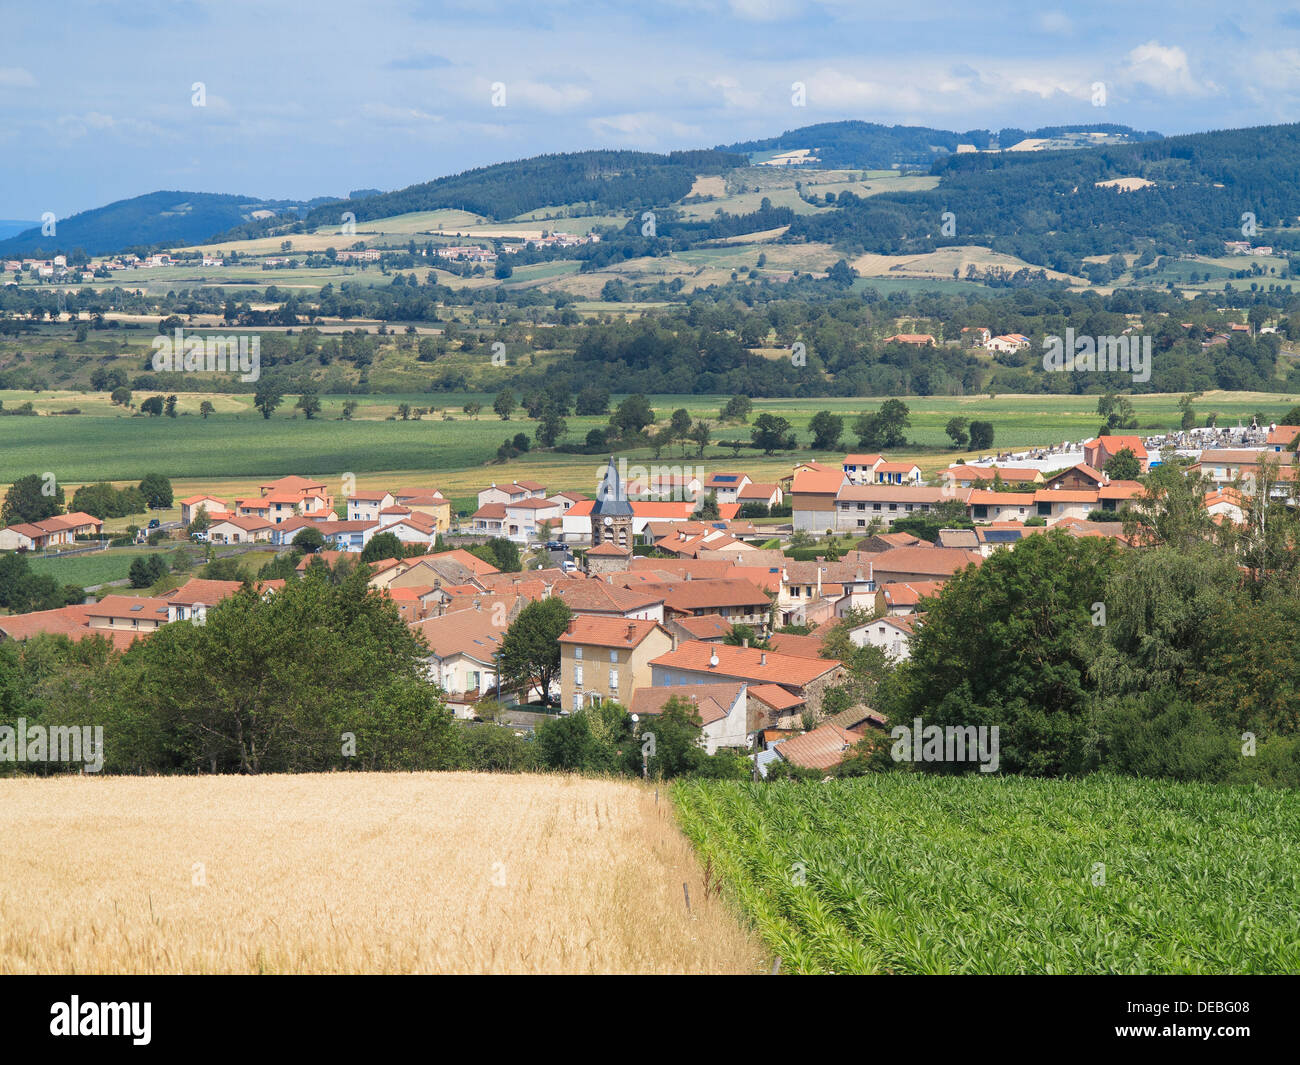 The town of Siaugues-St-Romain in the commune of Siaugues-Ste-Marie, Haute-Loire, Auvergne, France - Stock Image